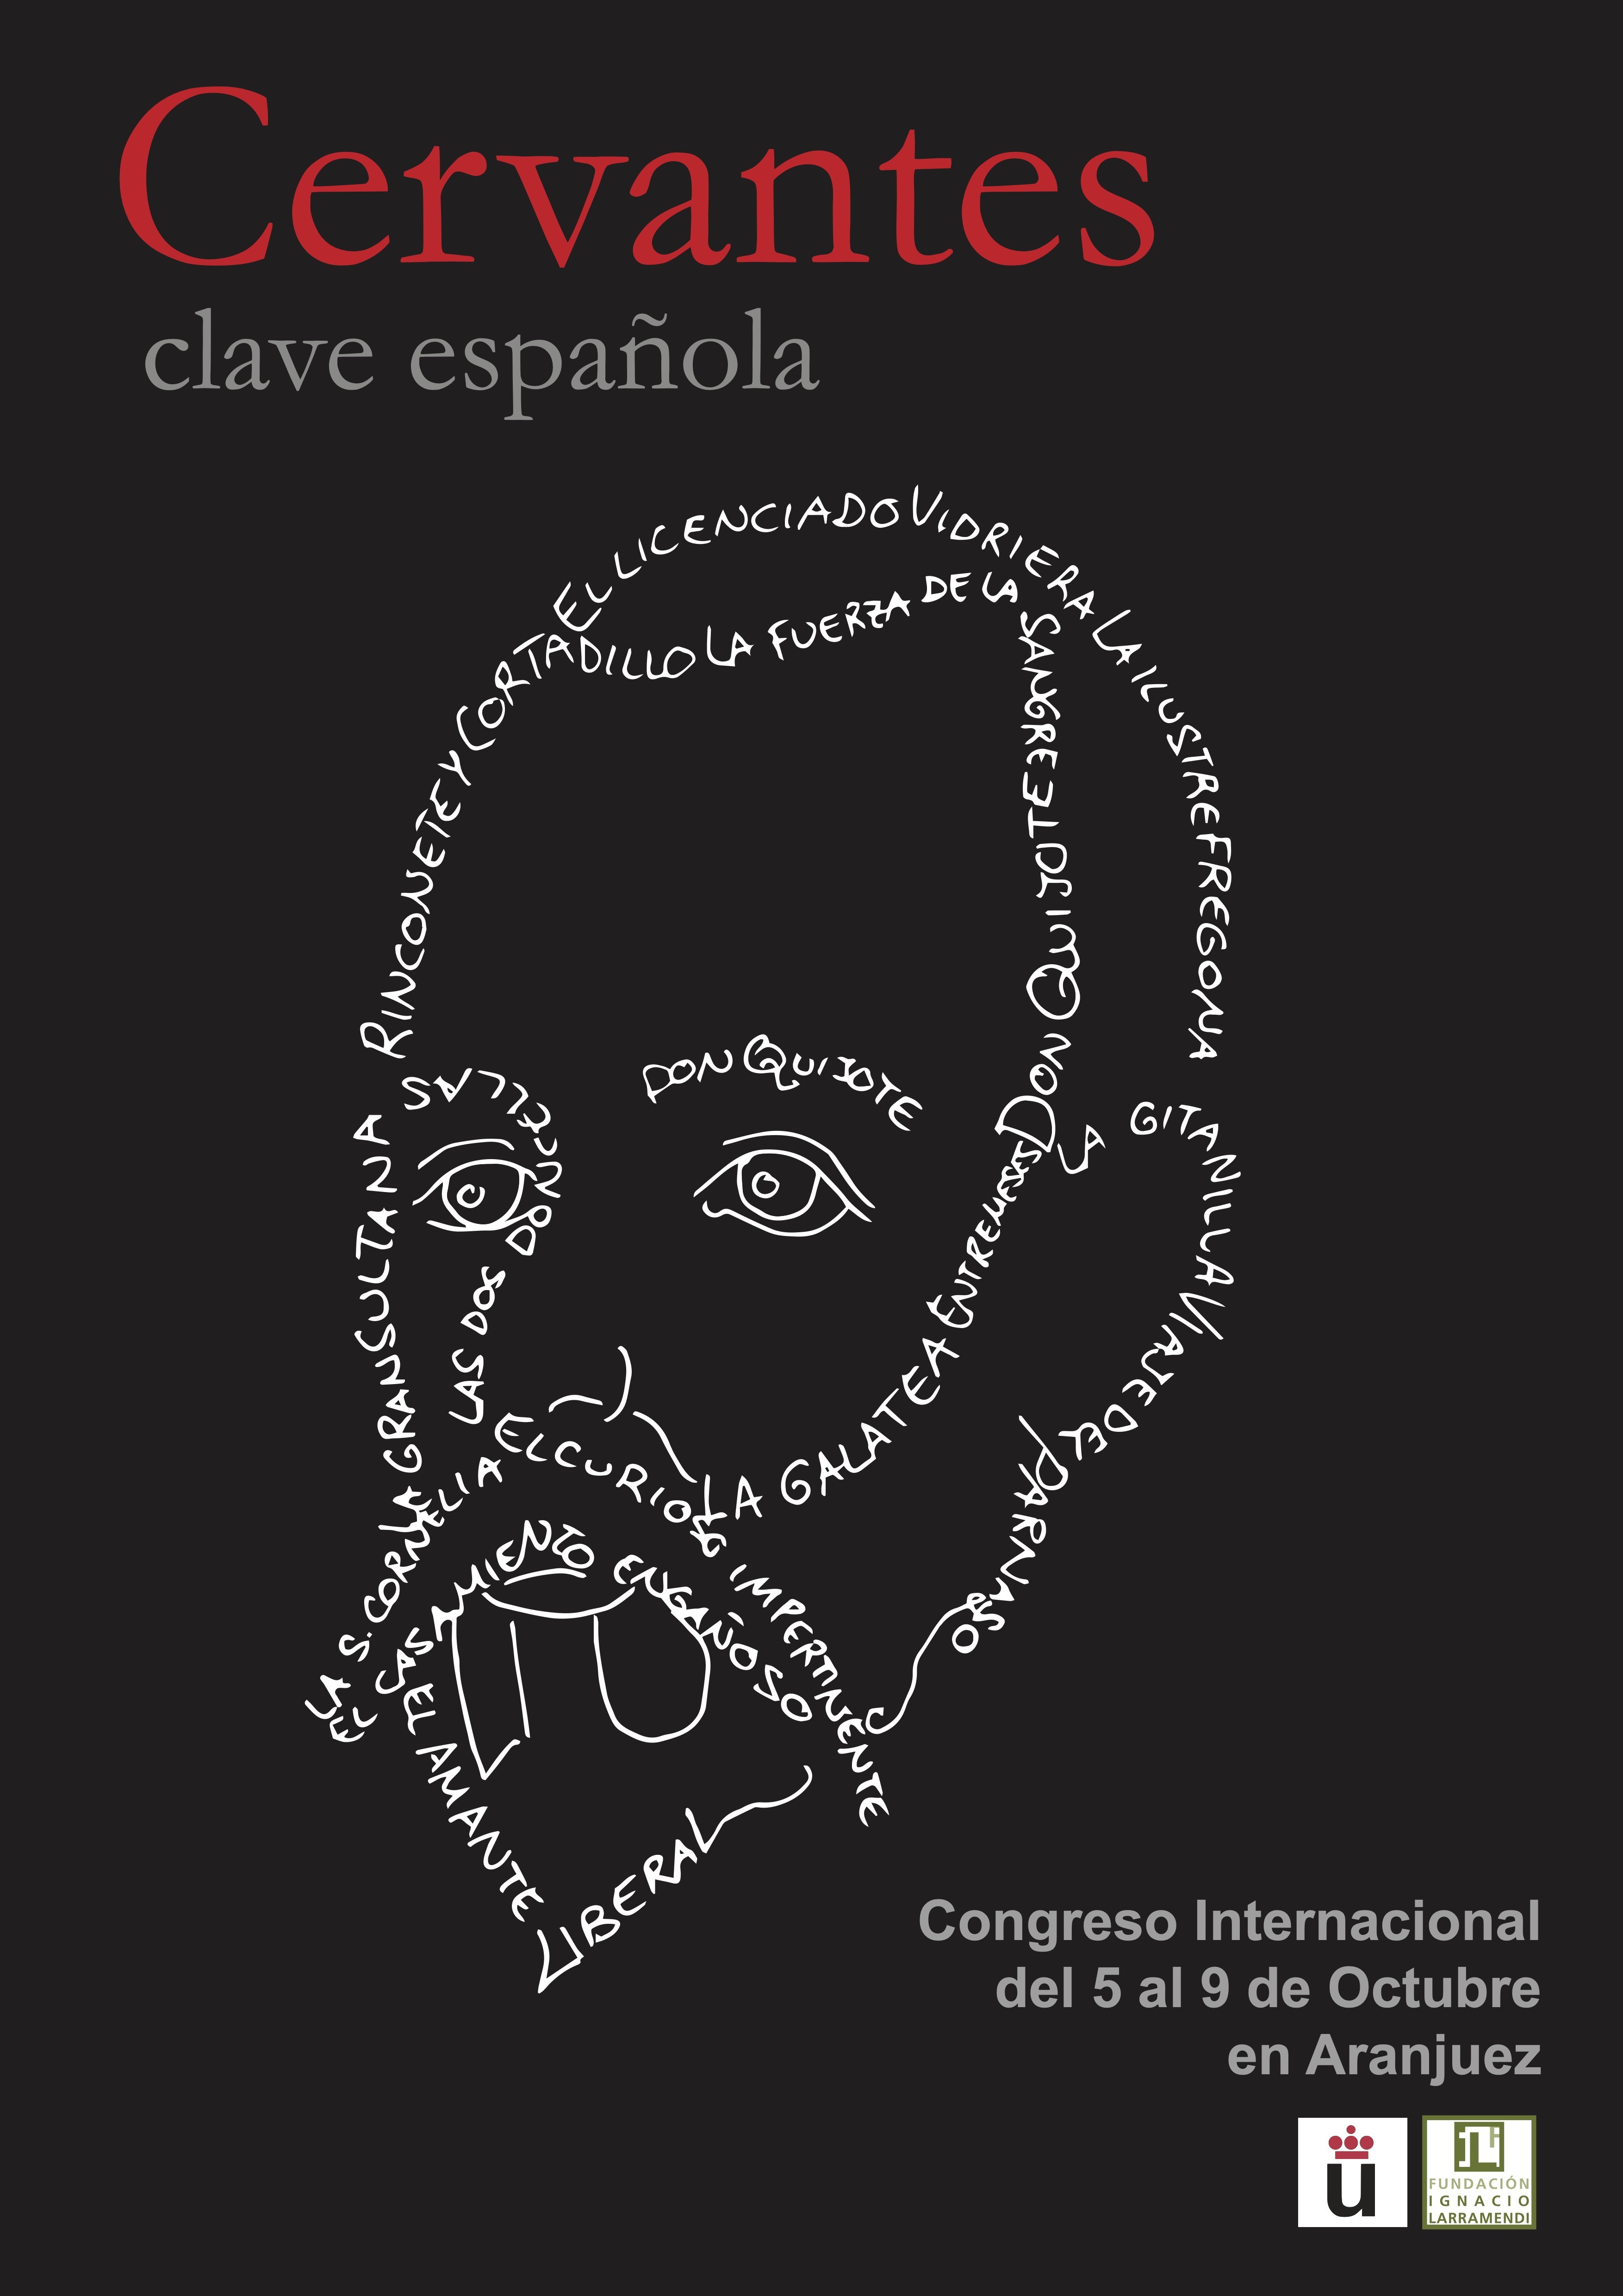 Cervantes Cartel